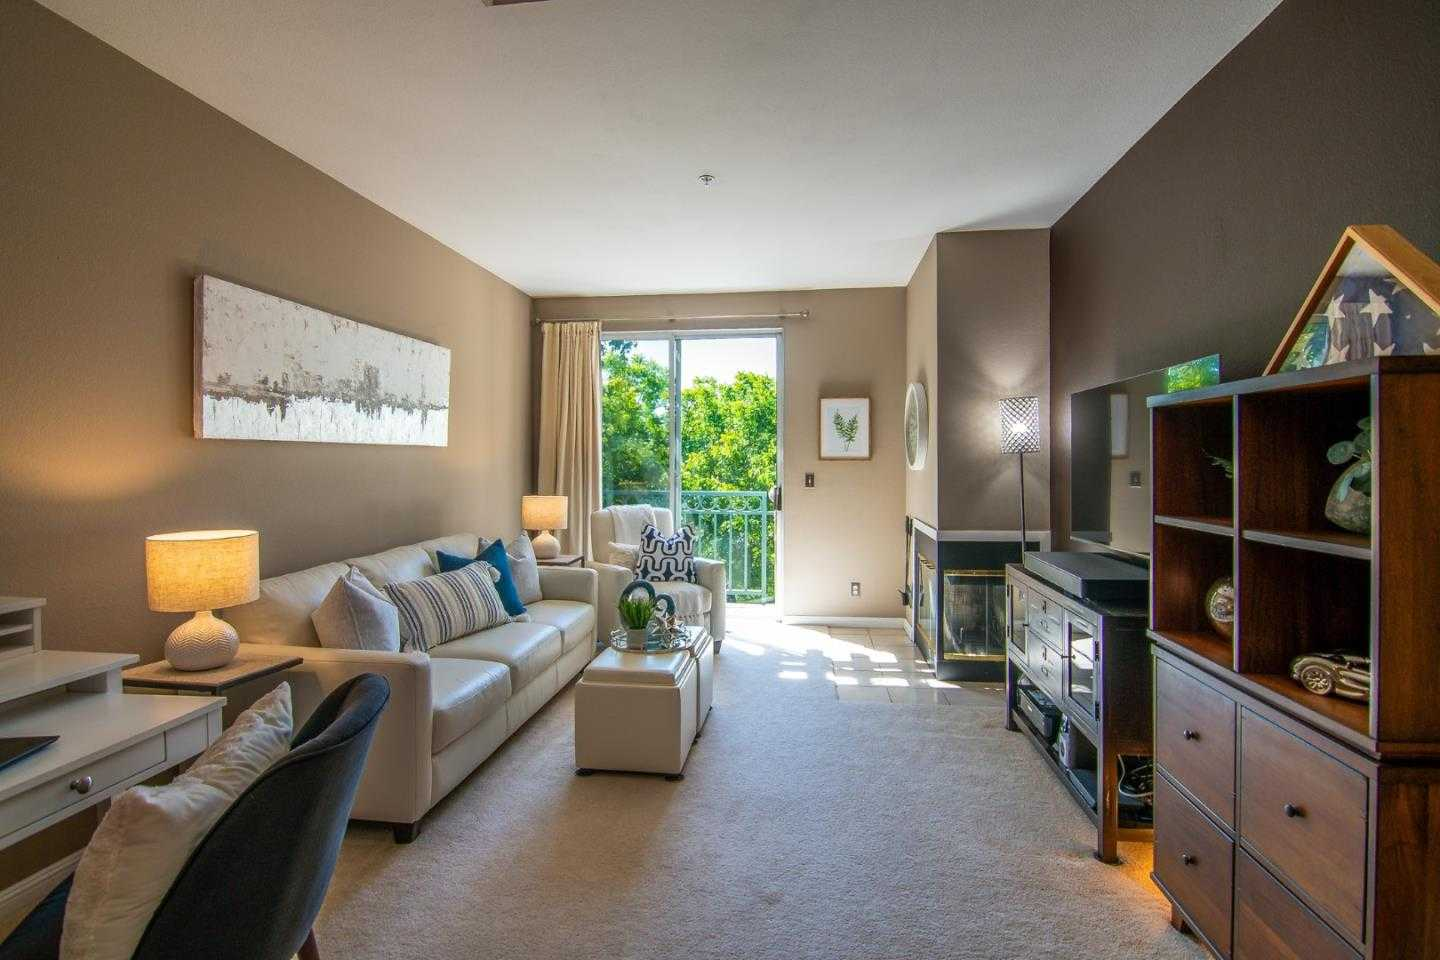 $498,000 - 1Br/1Ba -  for Sale in San Jose